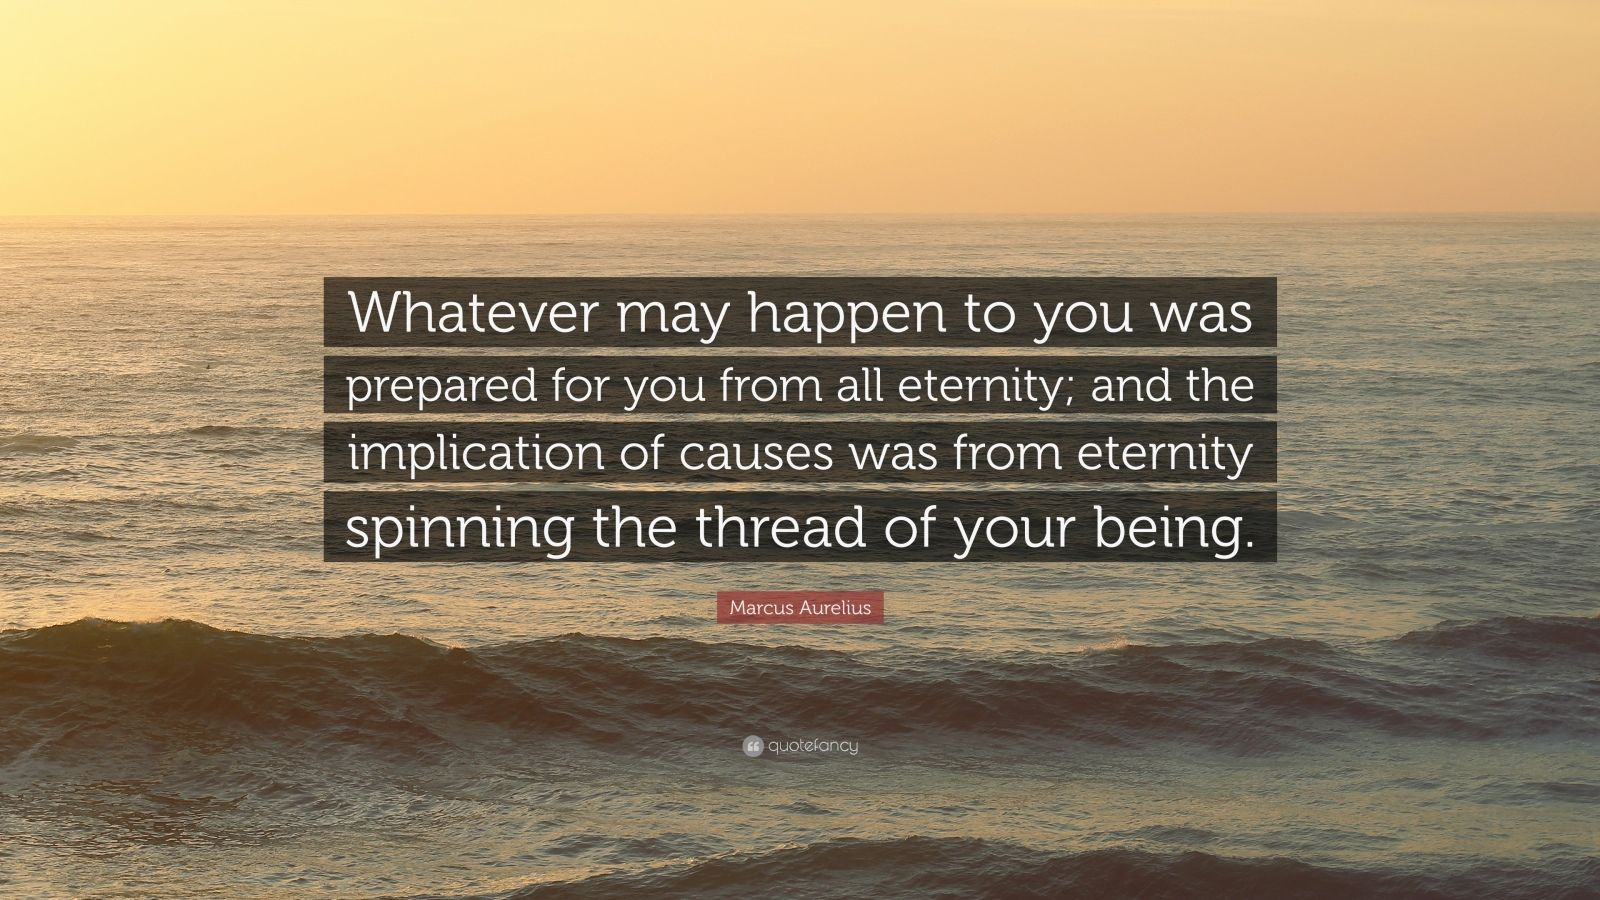 """Marcus Aurelius Quote: """"Whatever may happen to you was prepared for you from all eternity; and the implication of causes was from eternity spinning the thread of your being."""""""